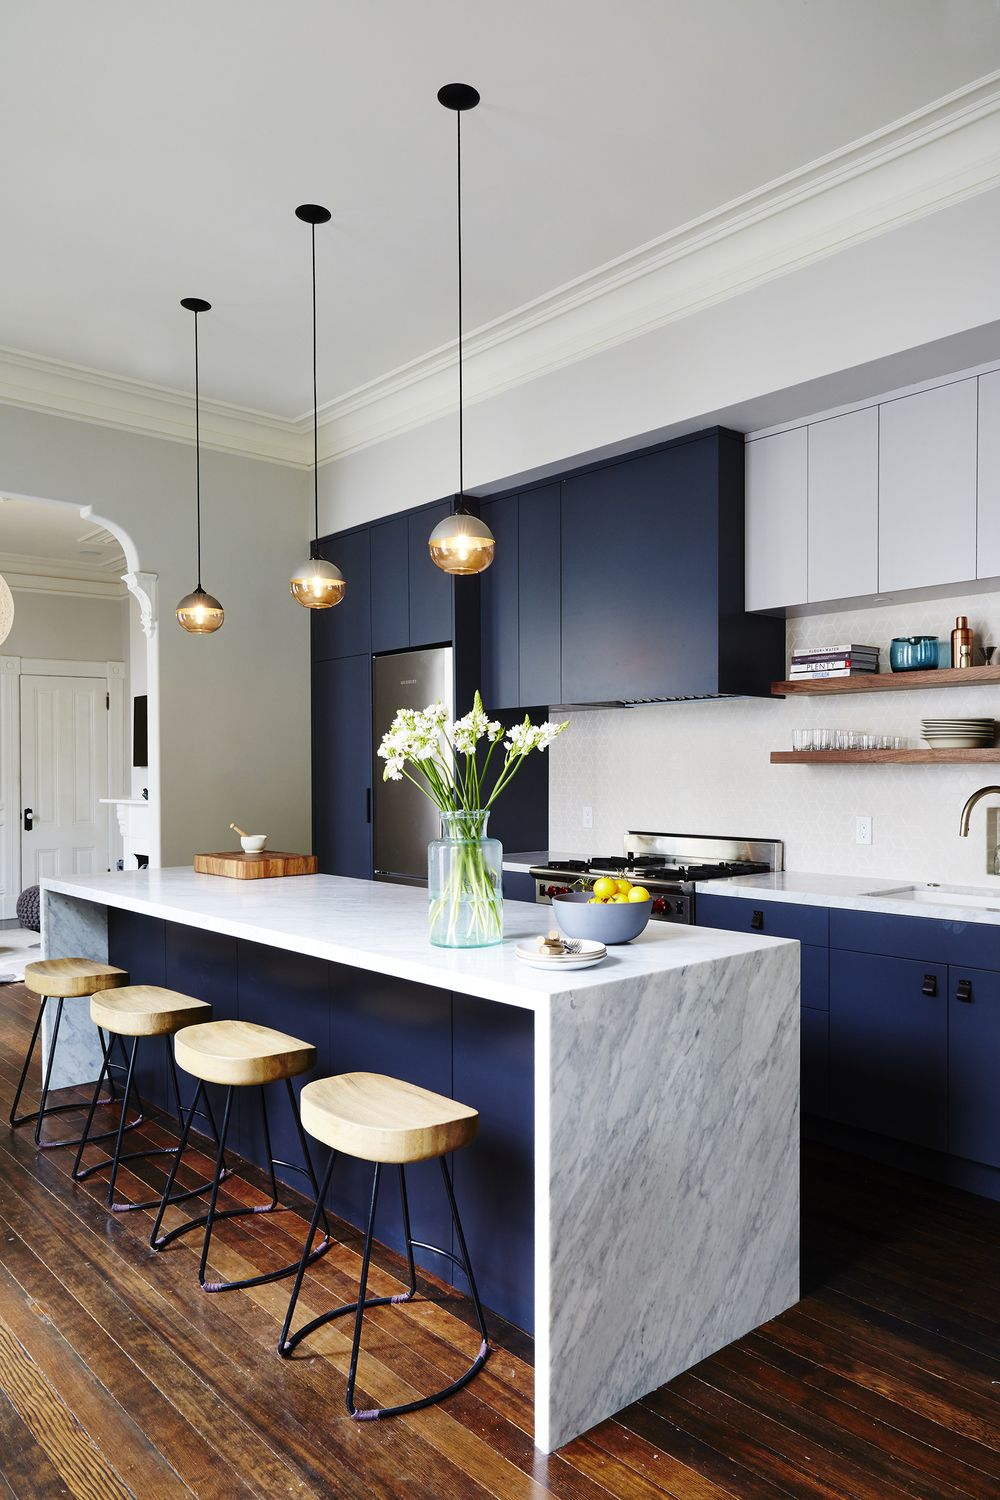 Ugh Is It Too Soon To Change The Color Of My Kitchen Cabinets From Grey To Blue I M Crushing Hard On These Kit Kitchen Design Modern Kitchen Kitchen Interior